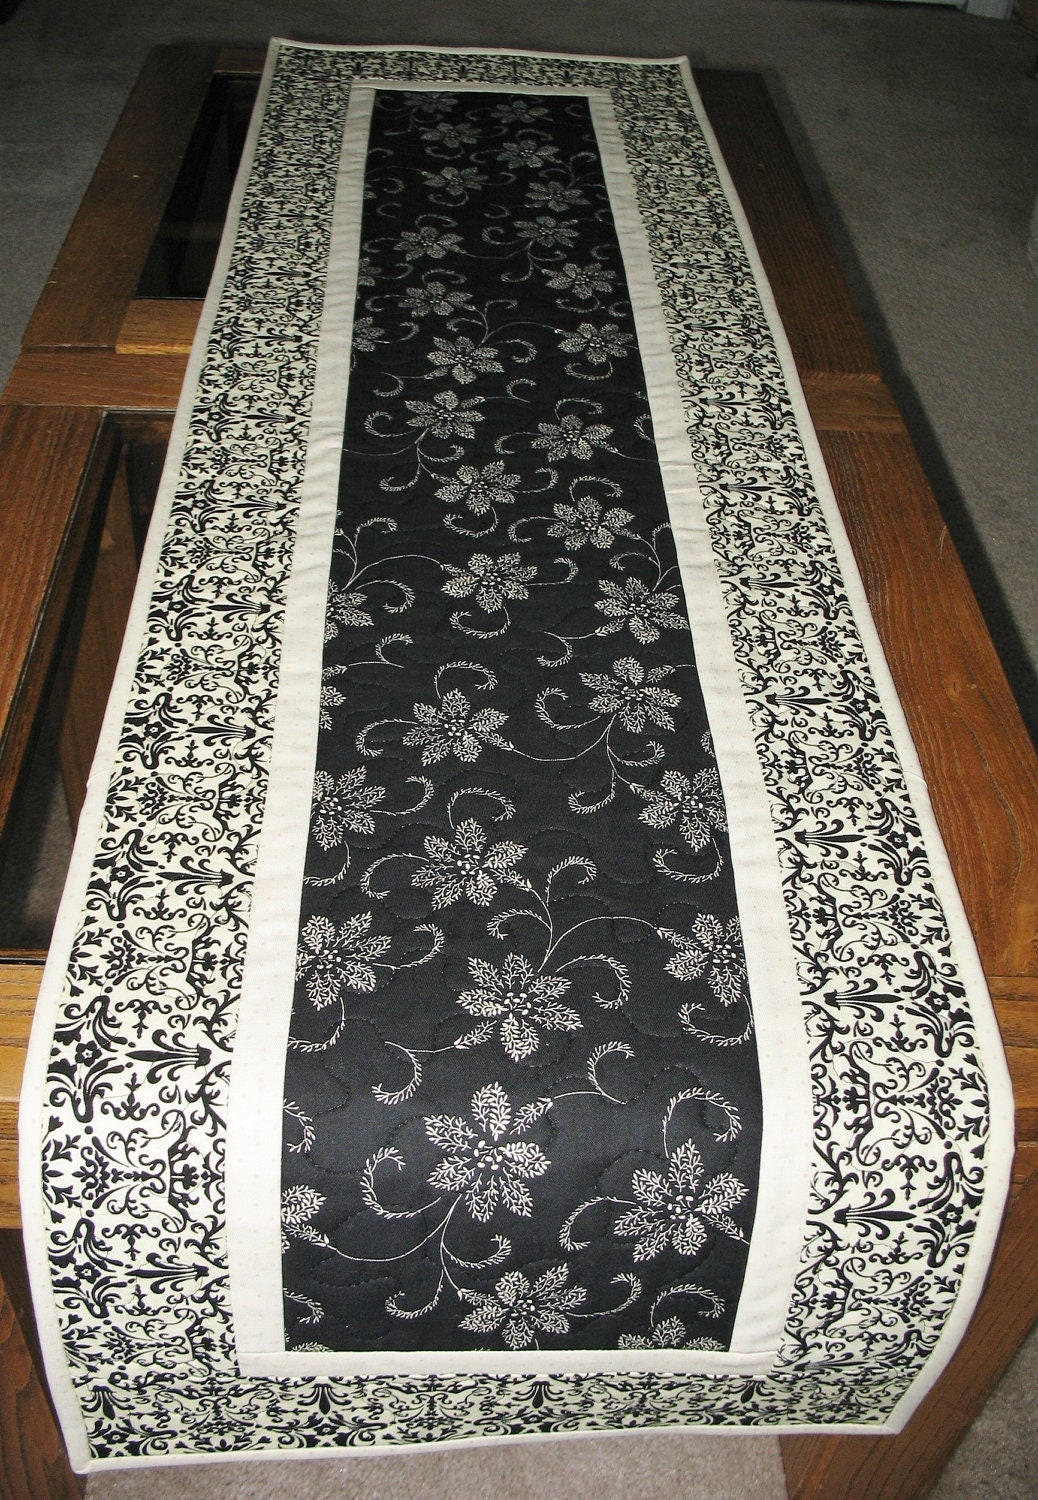 elegant table runner quilted fabric from timeless treasures. Black Bedroom Furniture Sets. Home Design Ideas